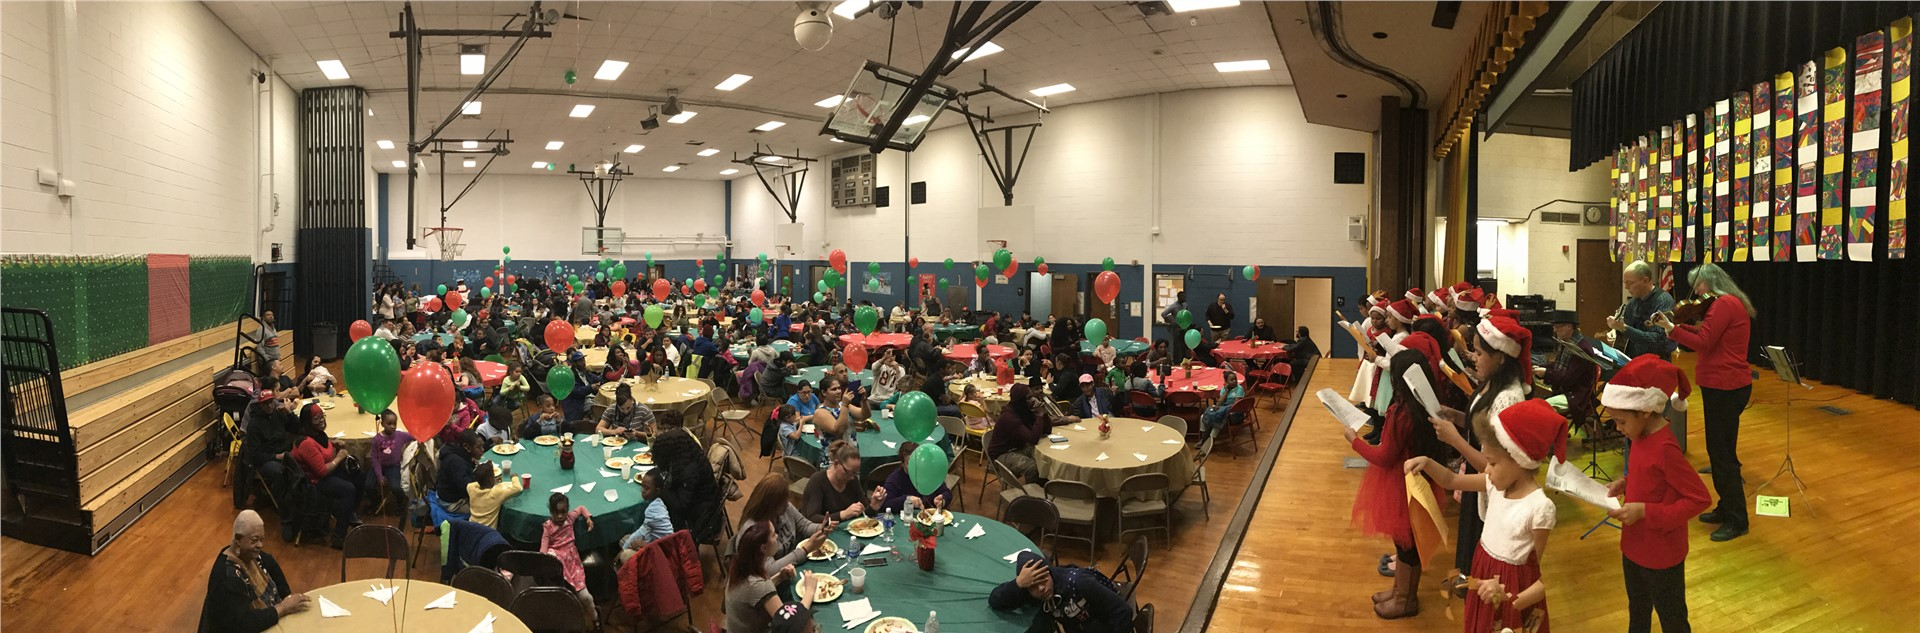 Holiday Community Celebration